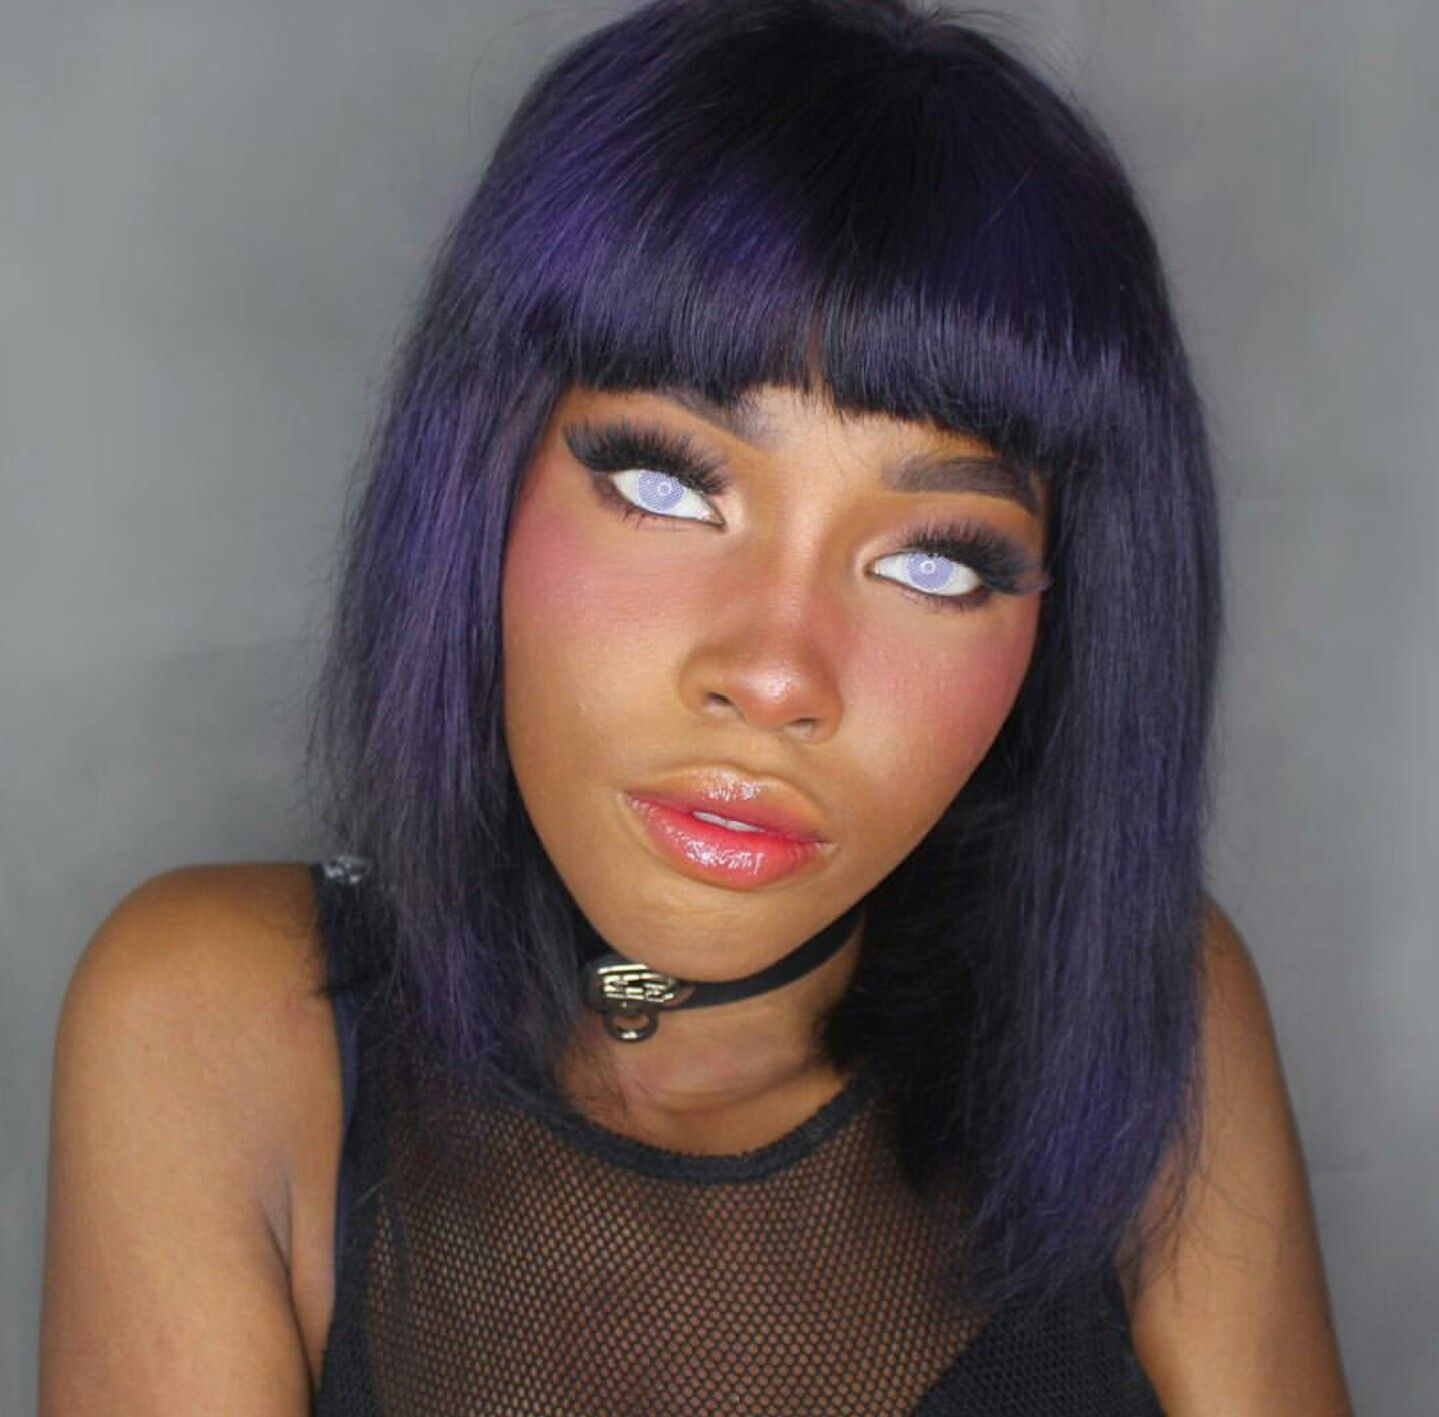 Pin by dylen morgan on e s sly pinterest colourful hair and wig